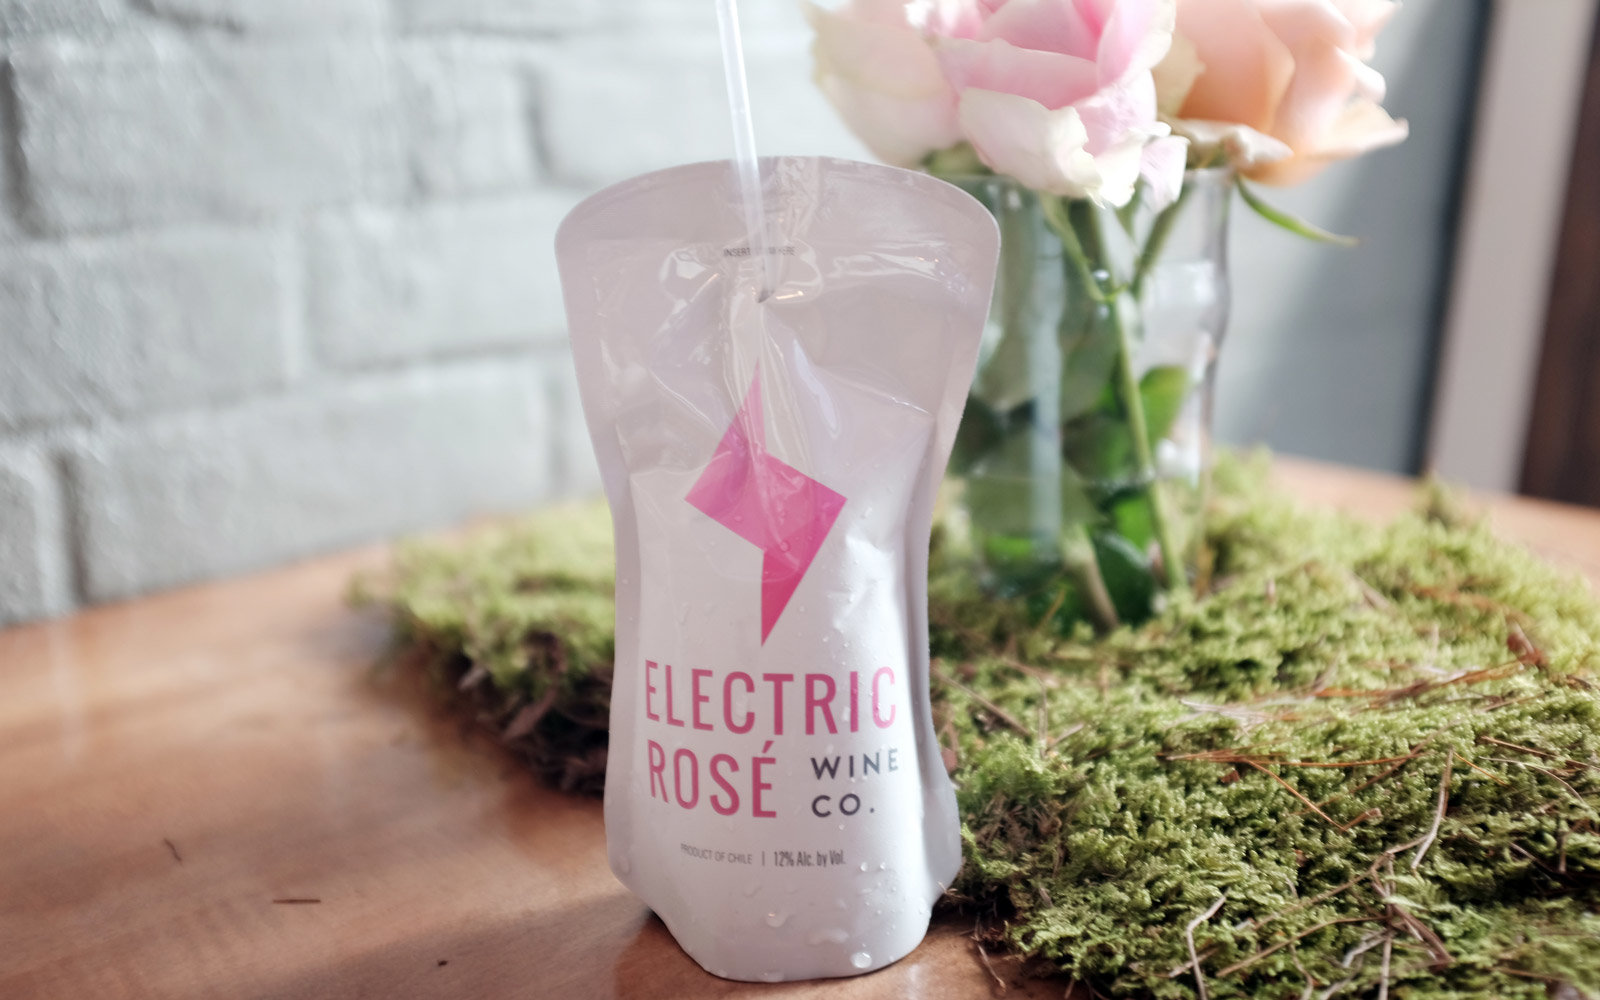 Rose wine in a pouch